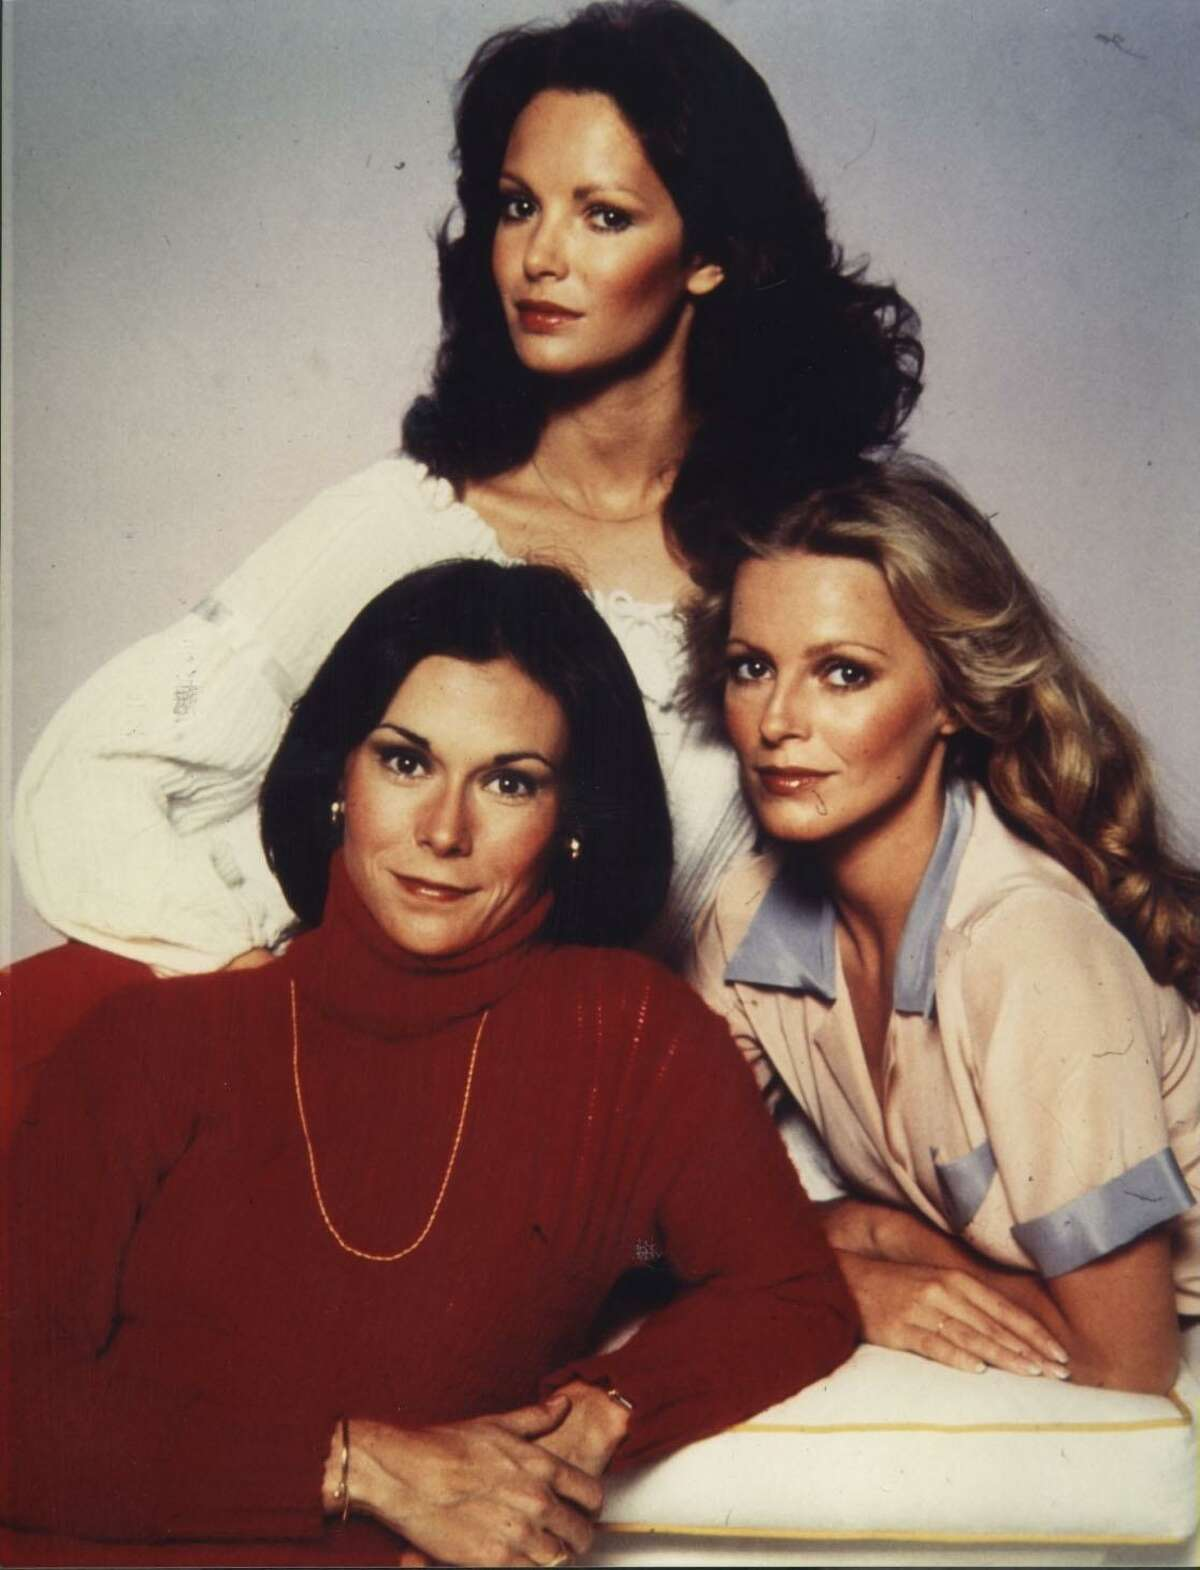 Cheryl Ladd with fellow